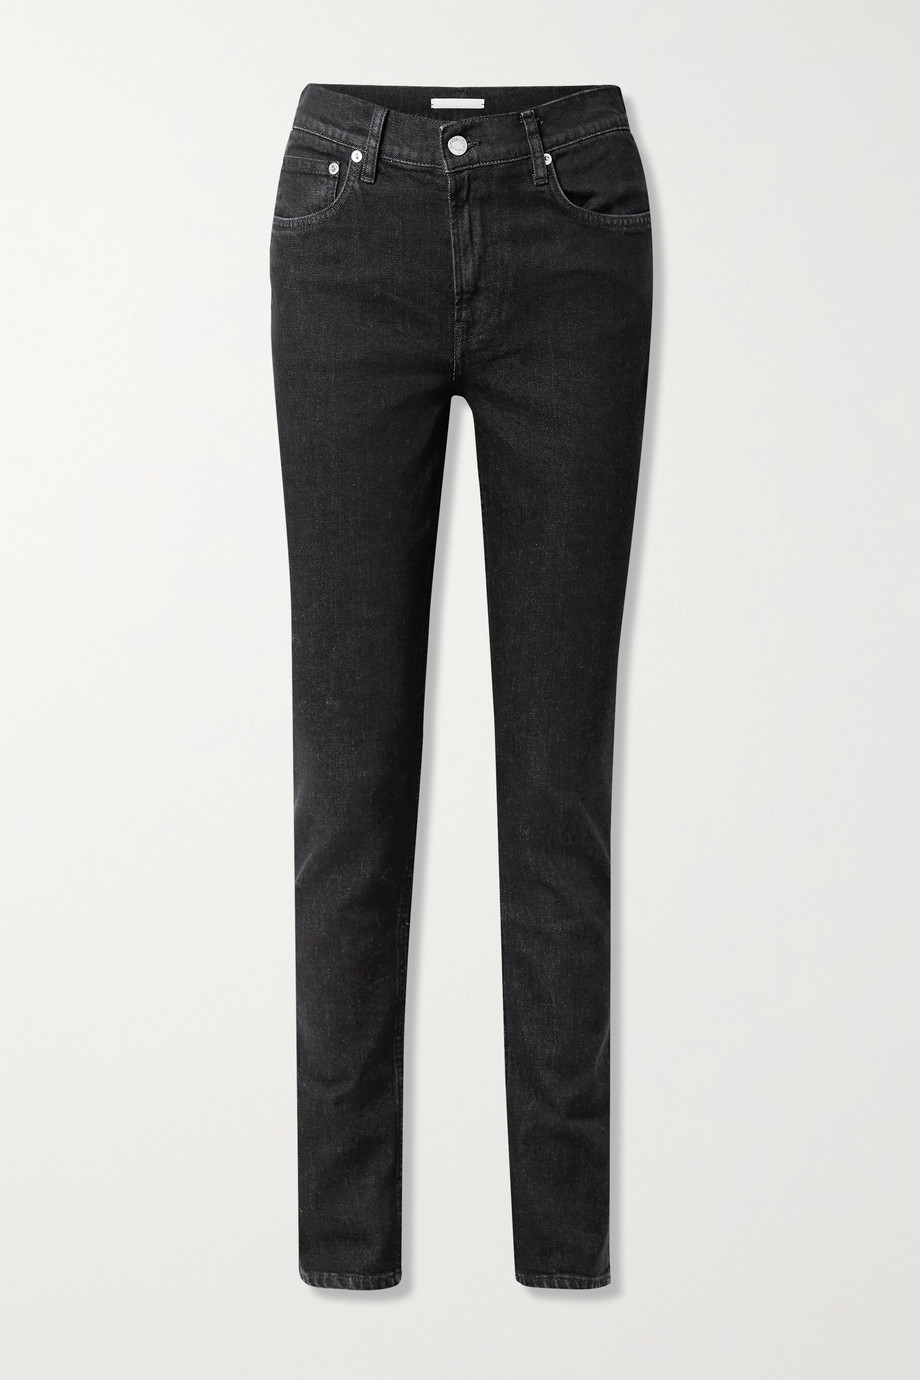 Helmut Lang High-rise skinny jeans